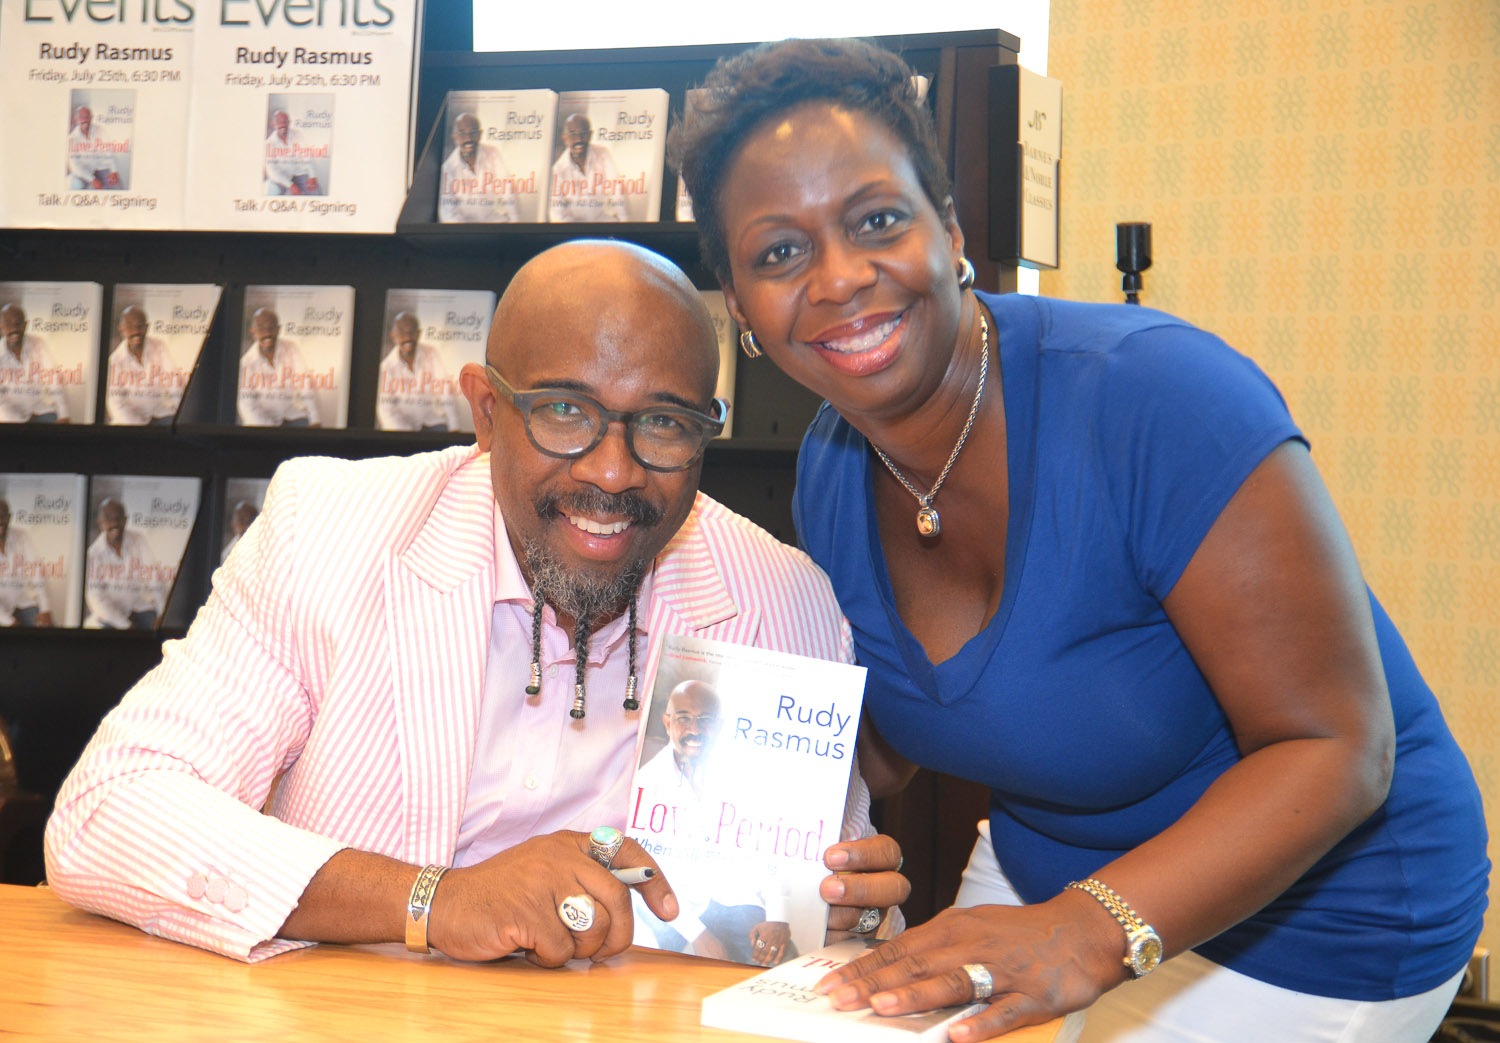 Paster Rudy book signing -0308.jpg